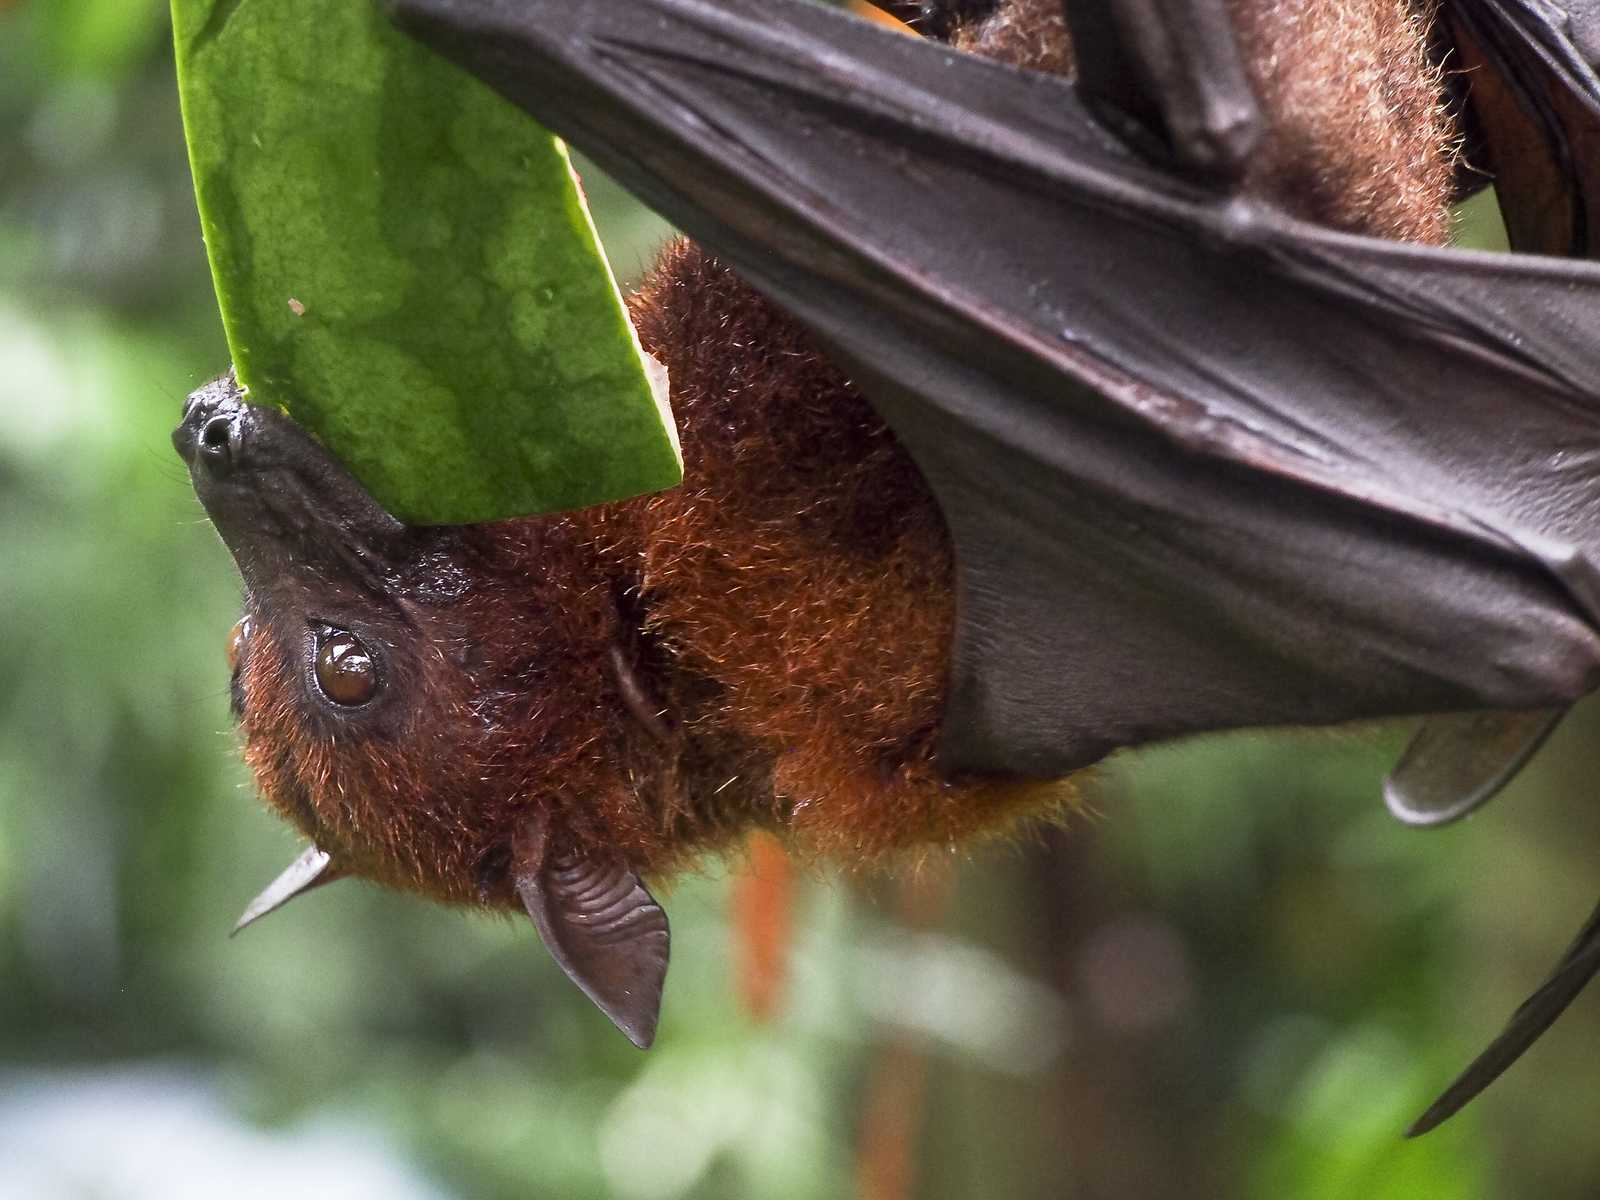 How long can bats go without food?